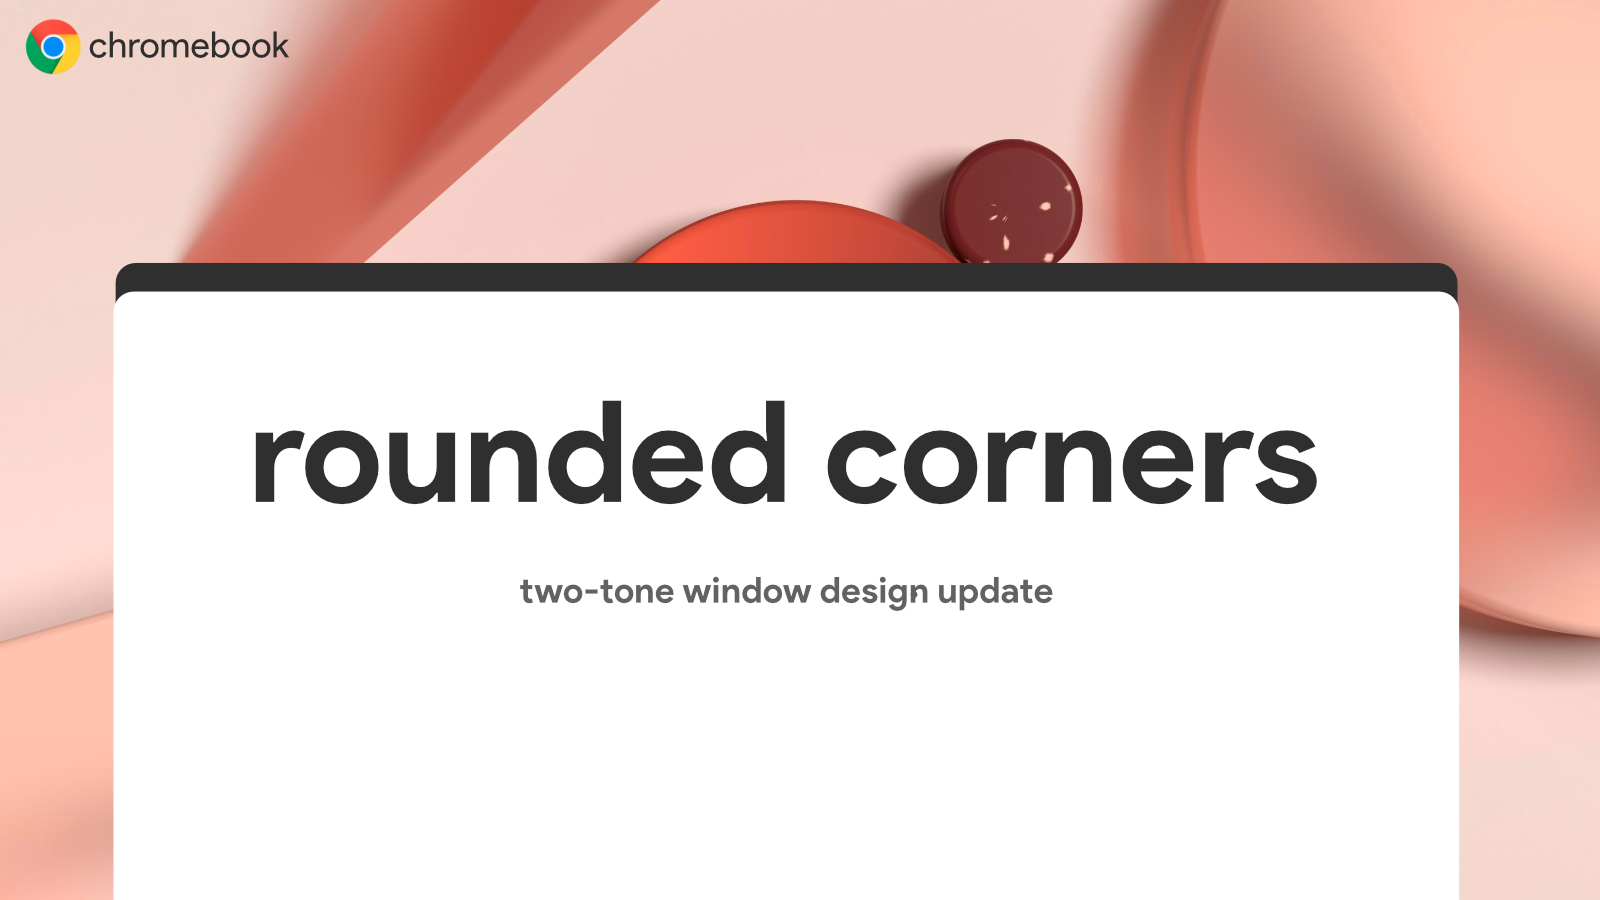 Chrome OS may receive a new two-tone window design with rounded corners